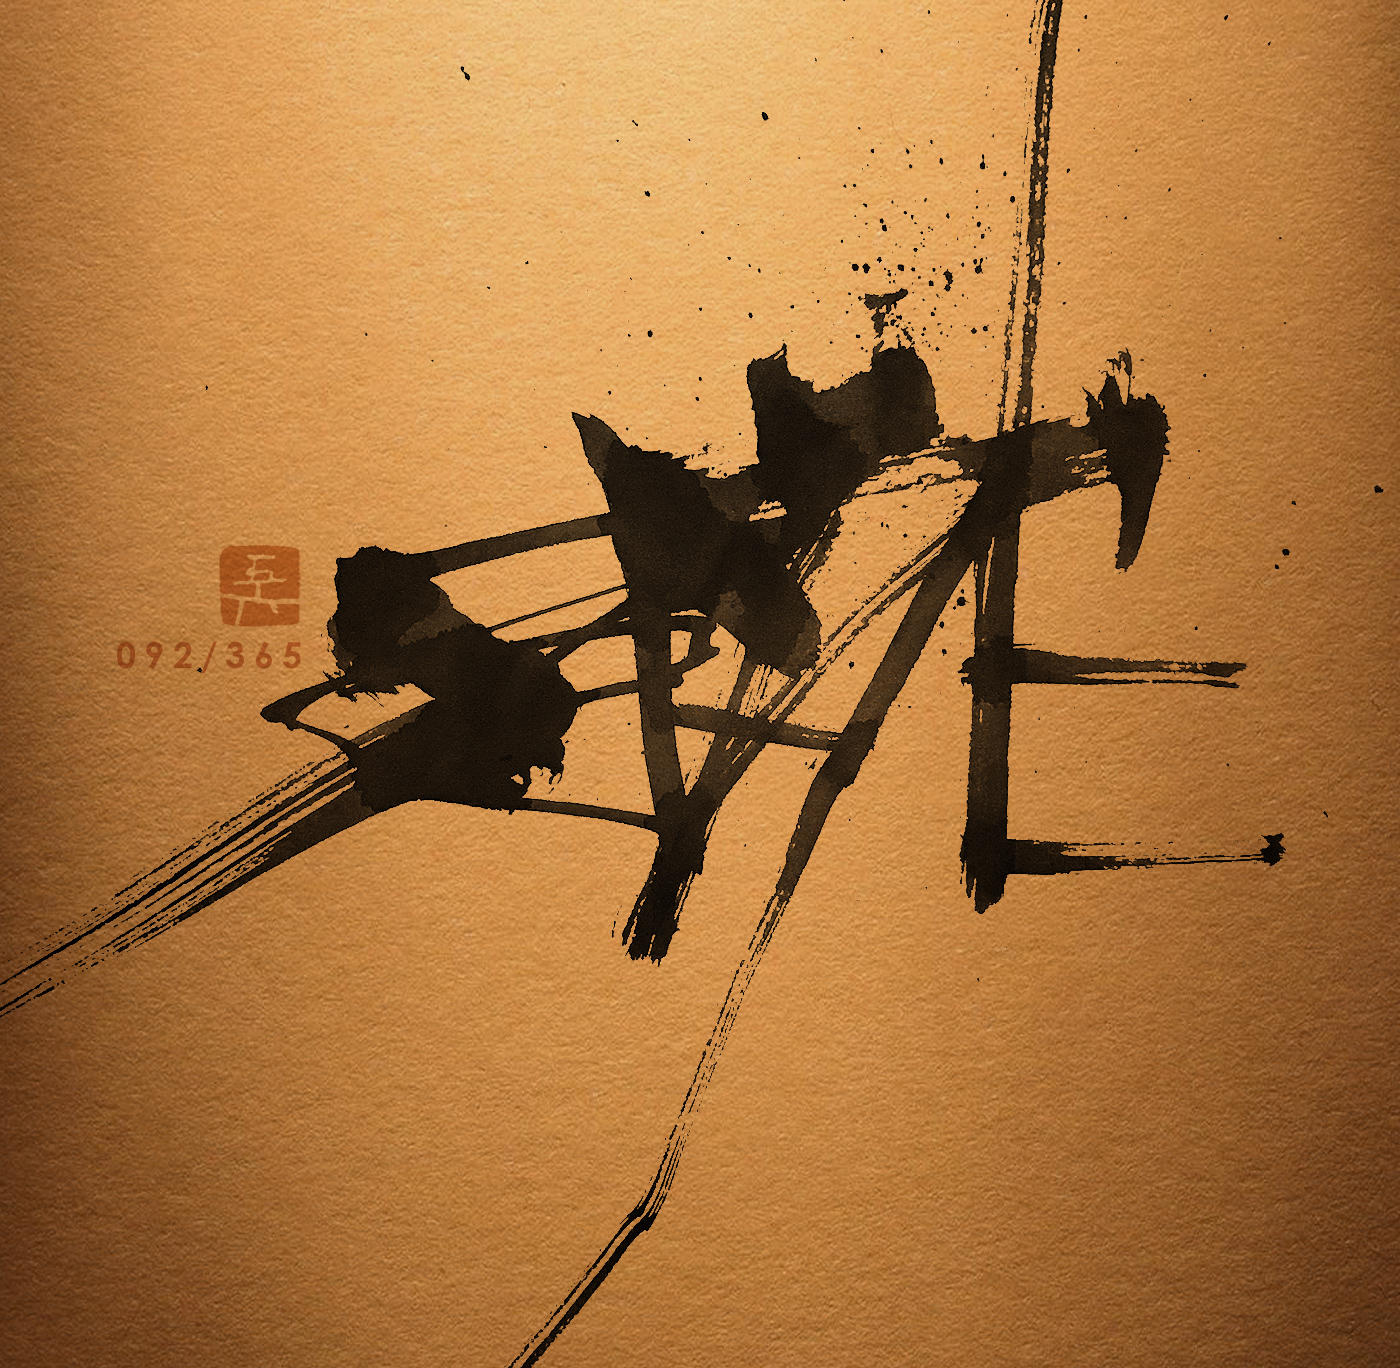 腕 arm upperarm かいな 書道作品 japaneseart japanesecalligraphy